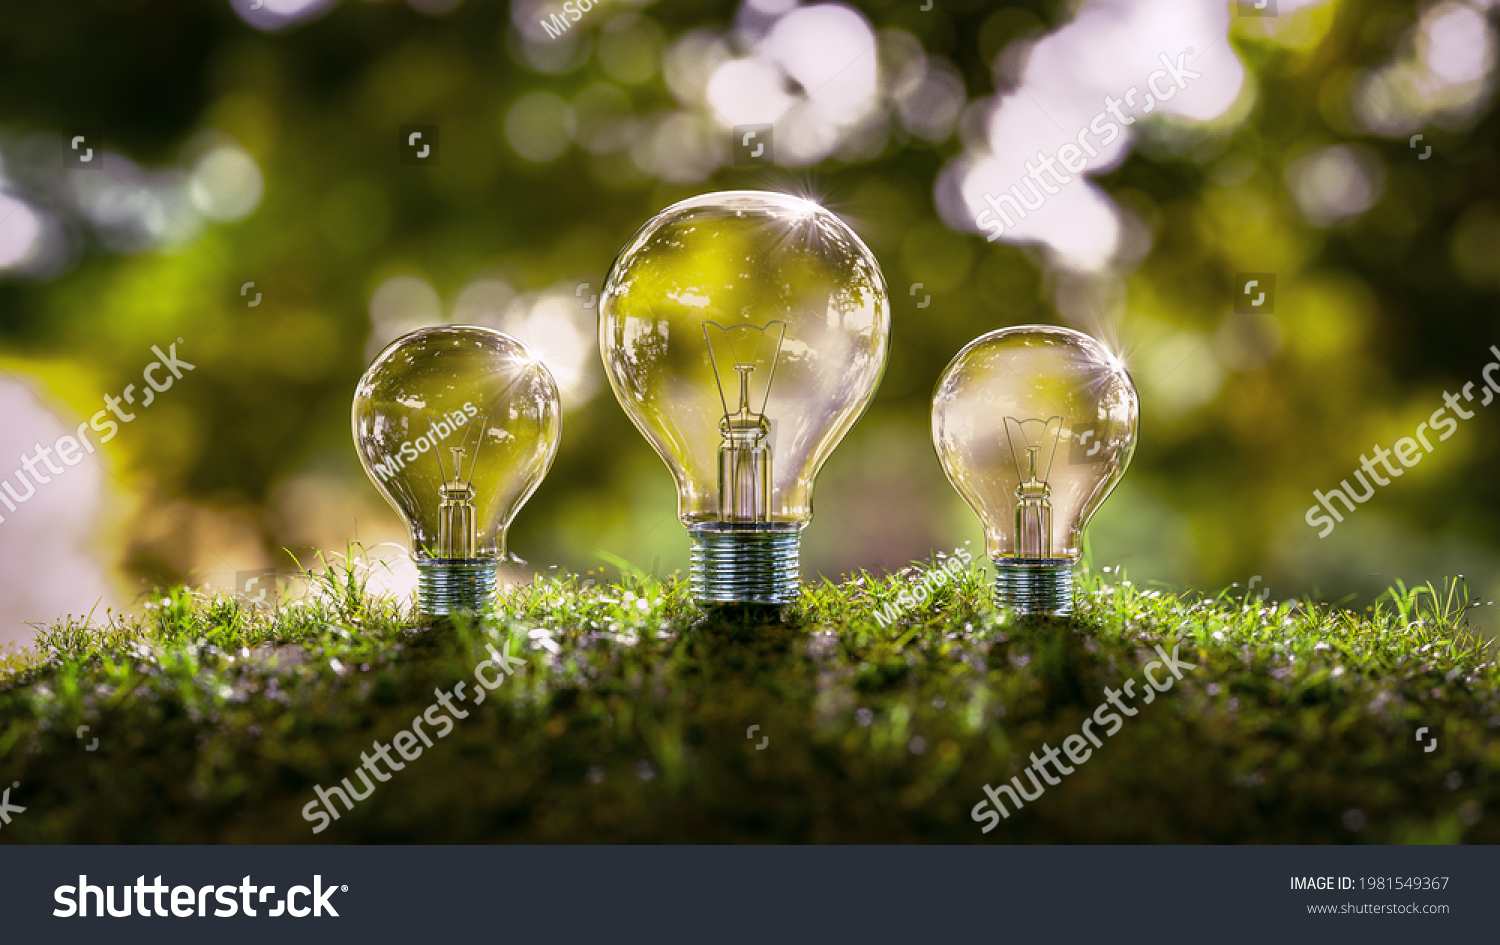 3d rendering of light bulbs in forest on moss